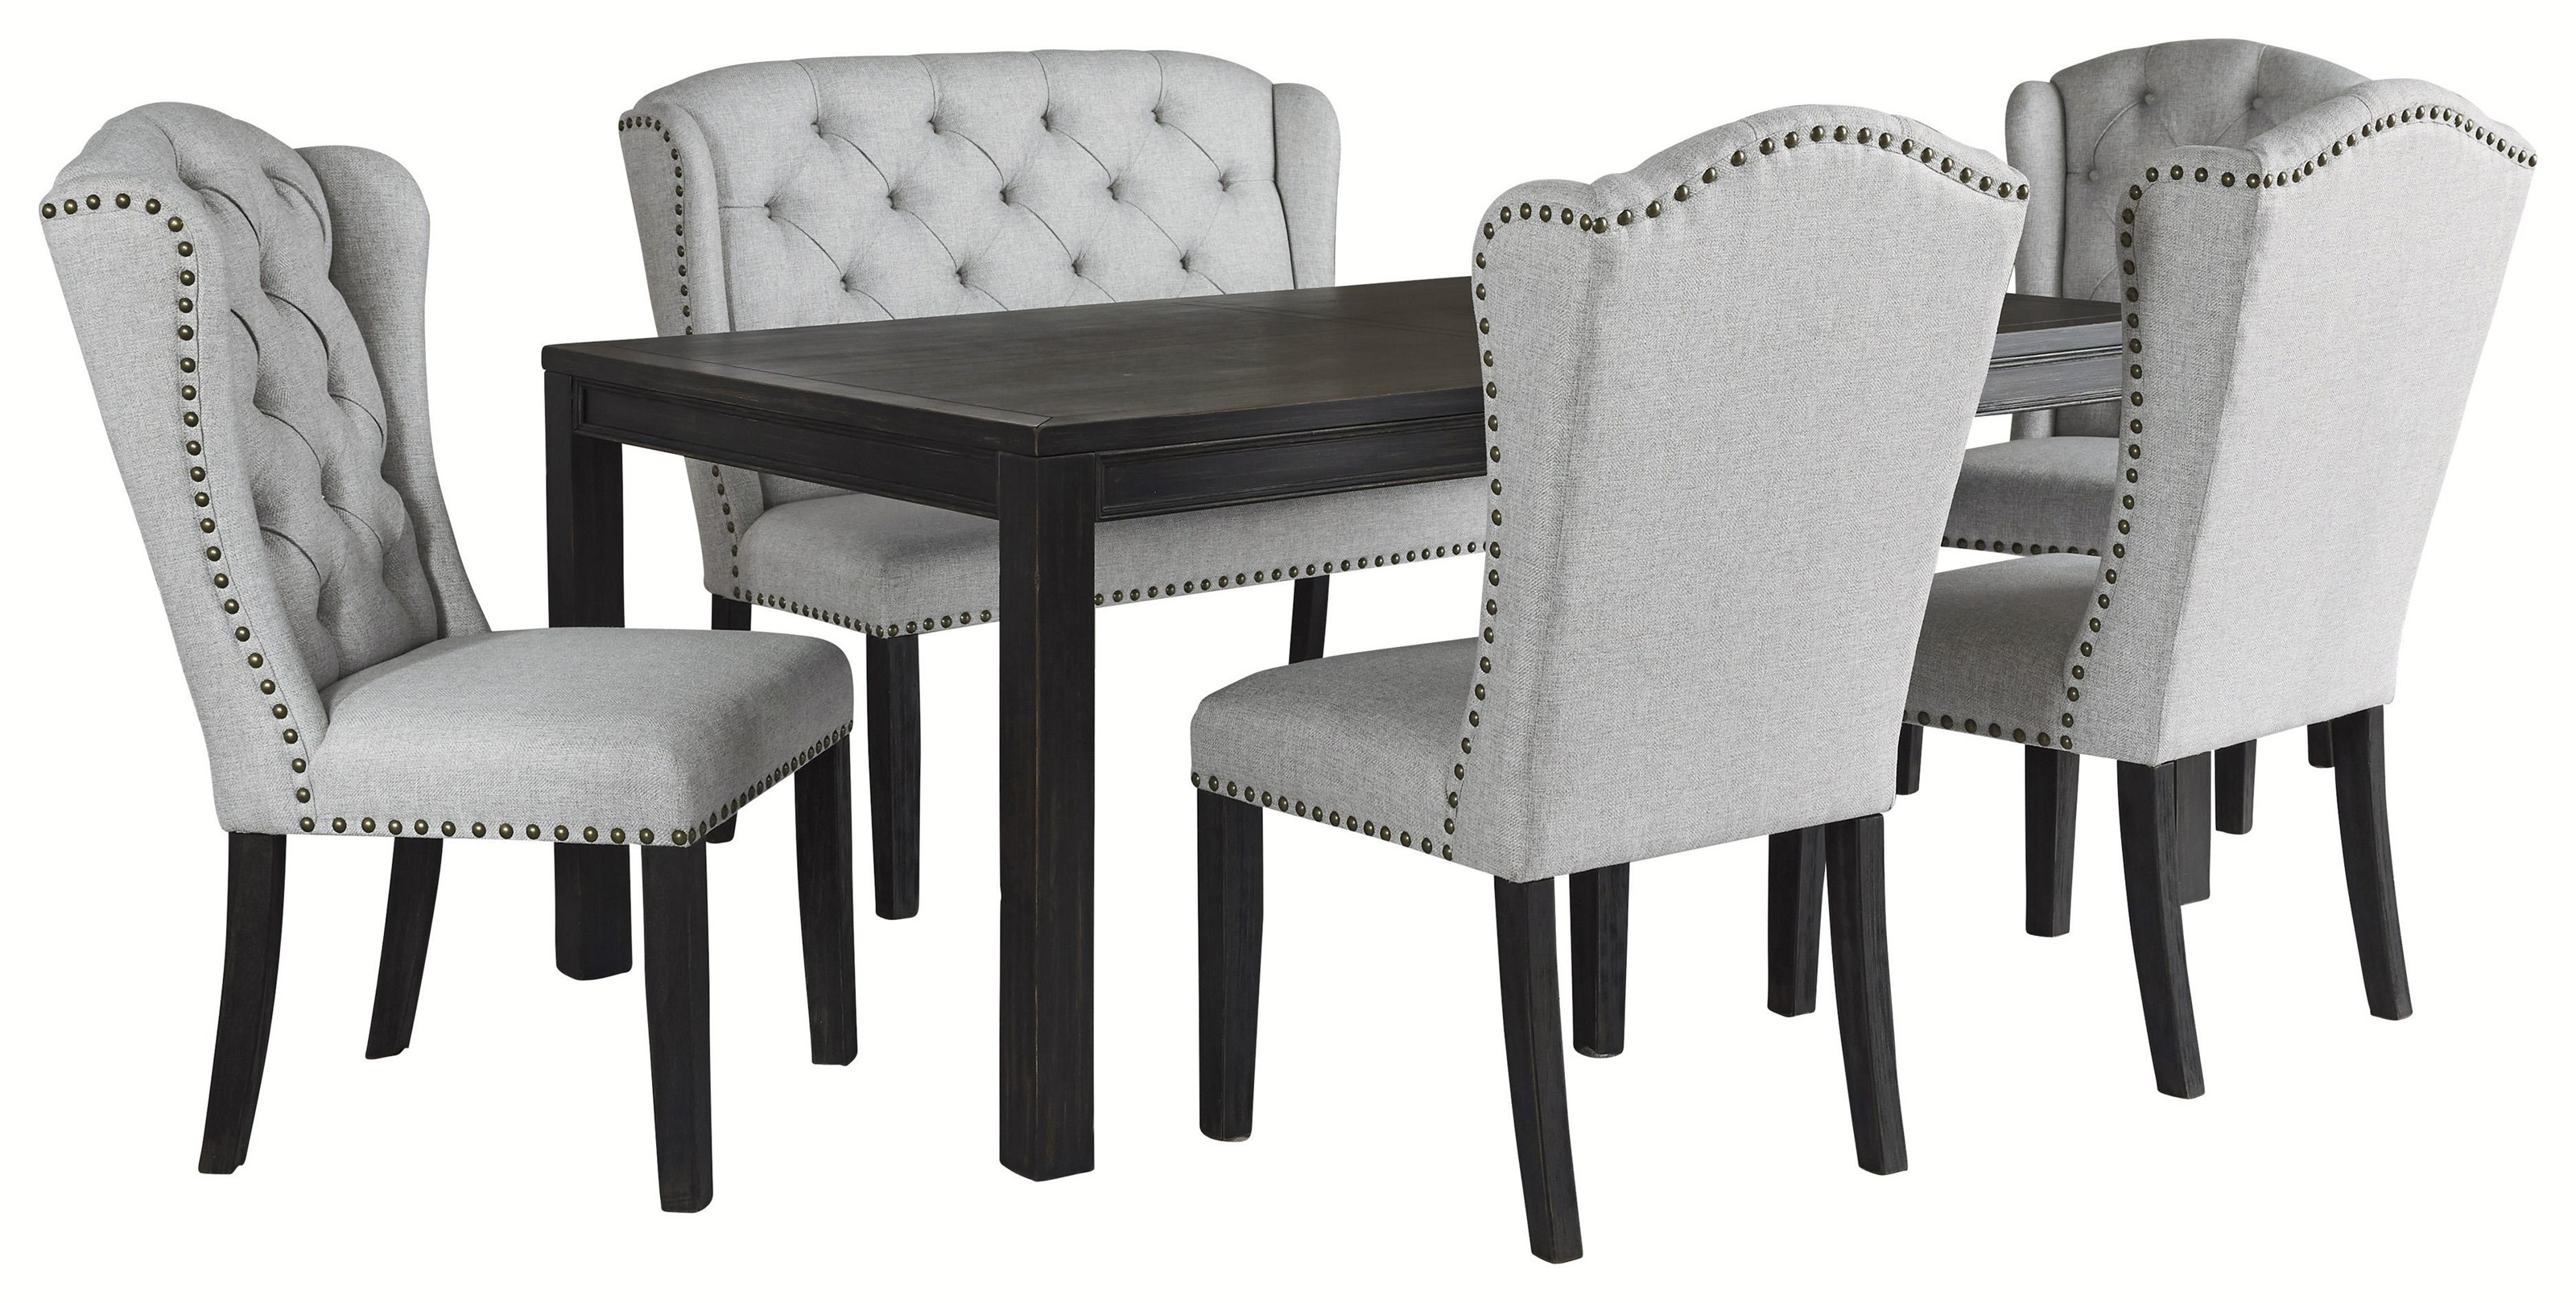 Picture of: Ashley Furniture Jeanette D702 25 4×01 08 6 Piece Rectangular Dining Table 4 Upholstered Side Chairs And Upholstered Bench Sam Levitz Furniture Table Chair Set With Bench